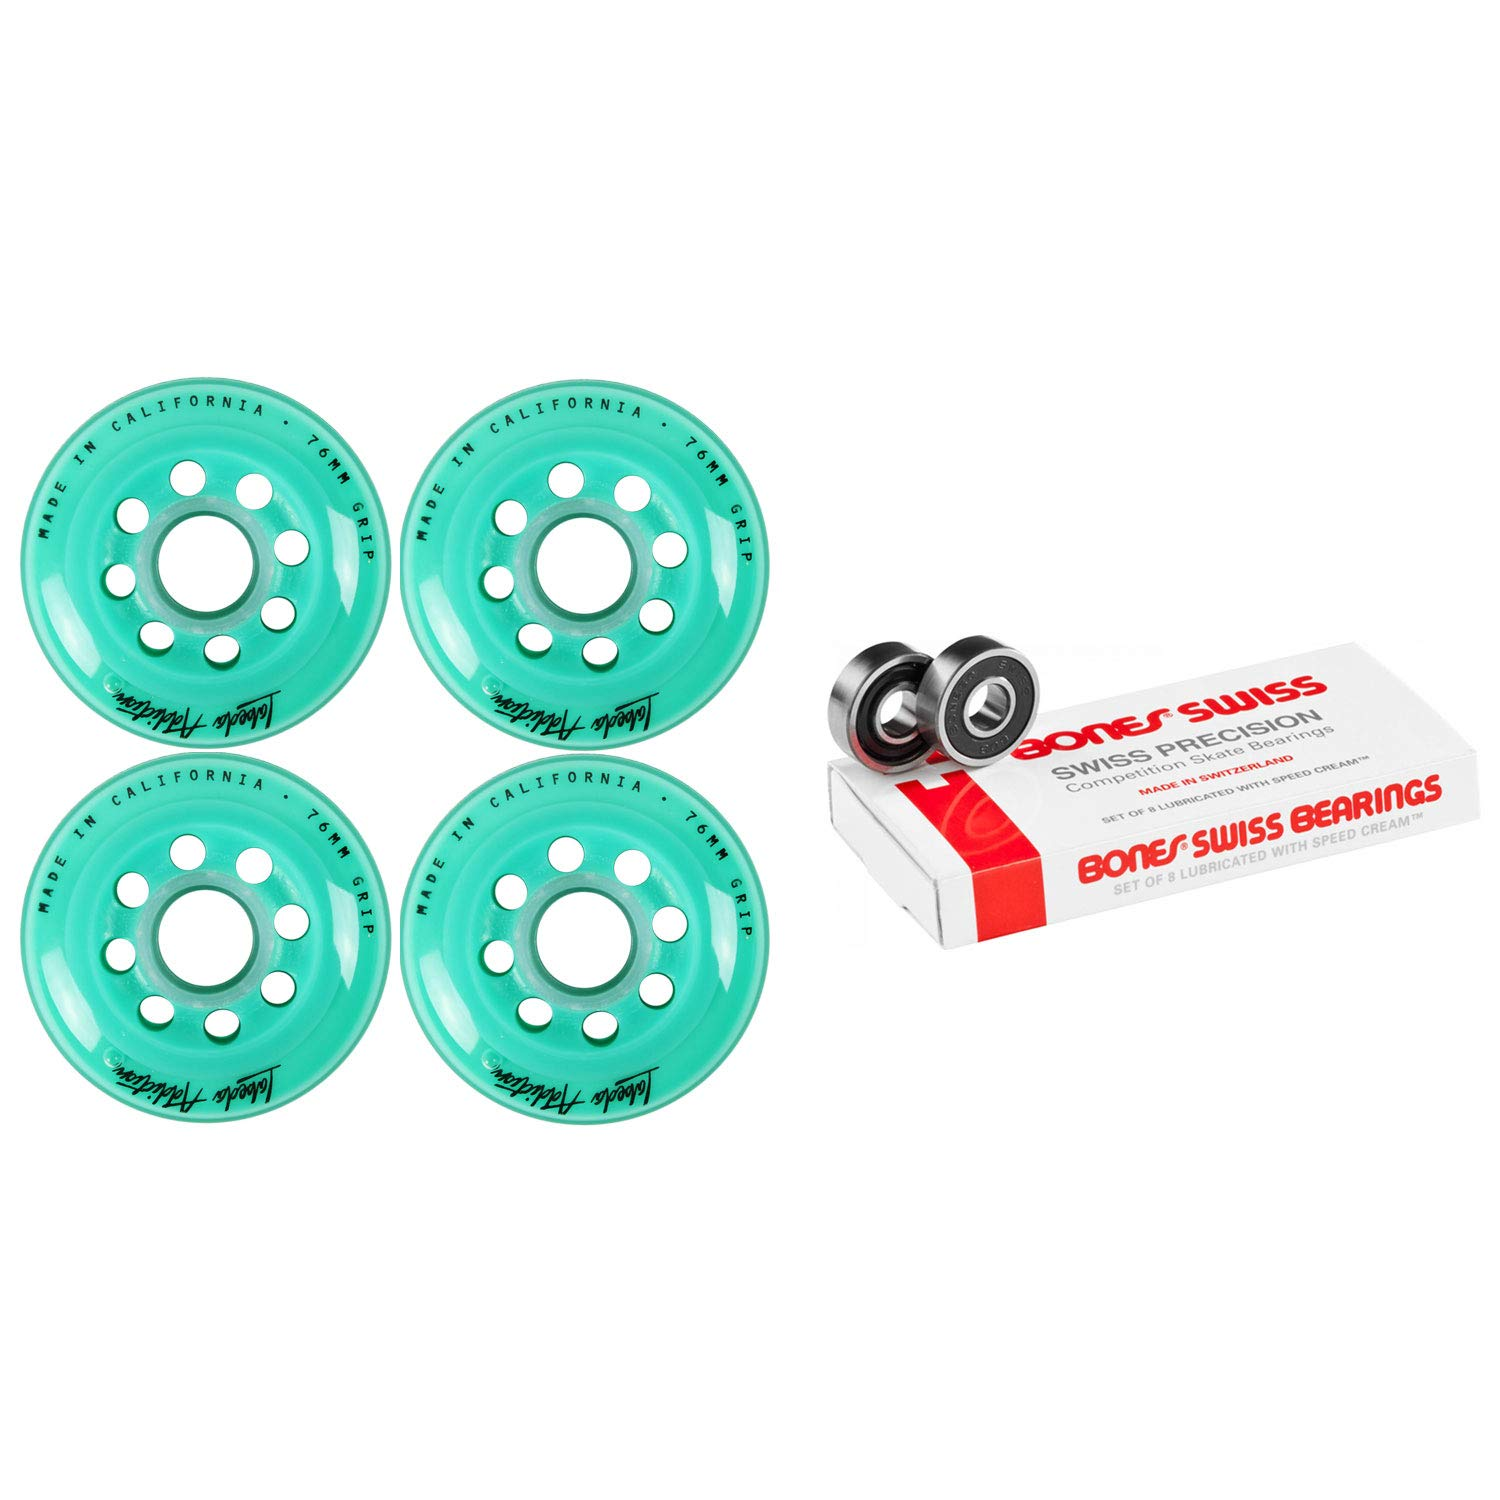 Labeda Inline Roller Hockey Skate Wheels Addiction Teal 76mm 4 Set Bones Swiss